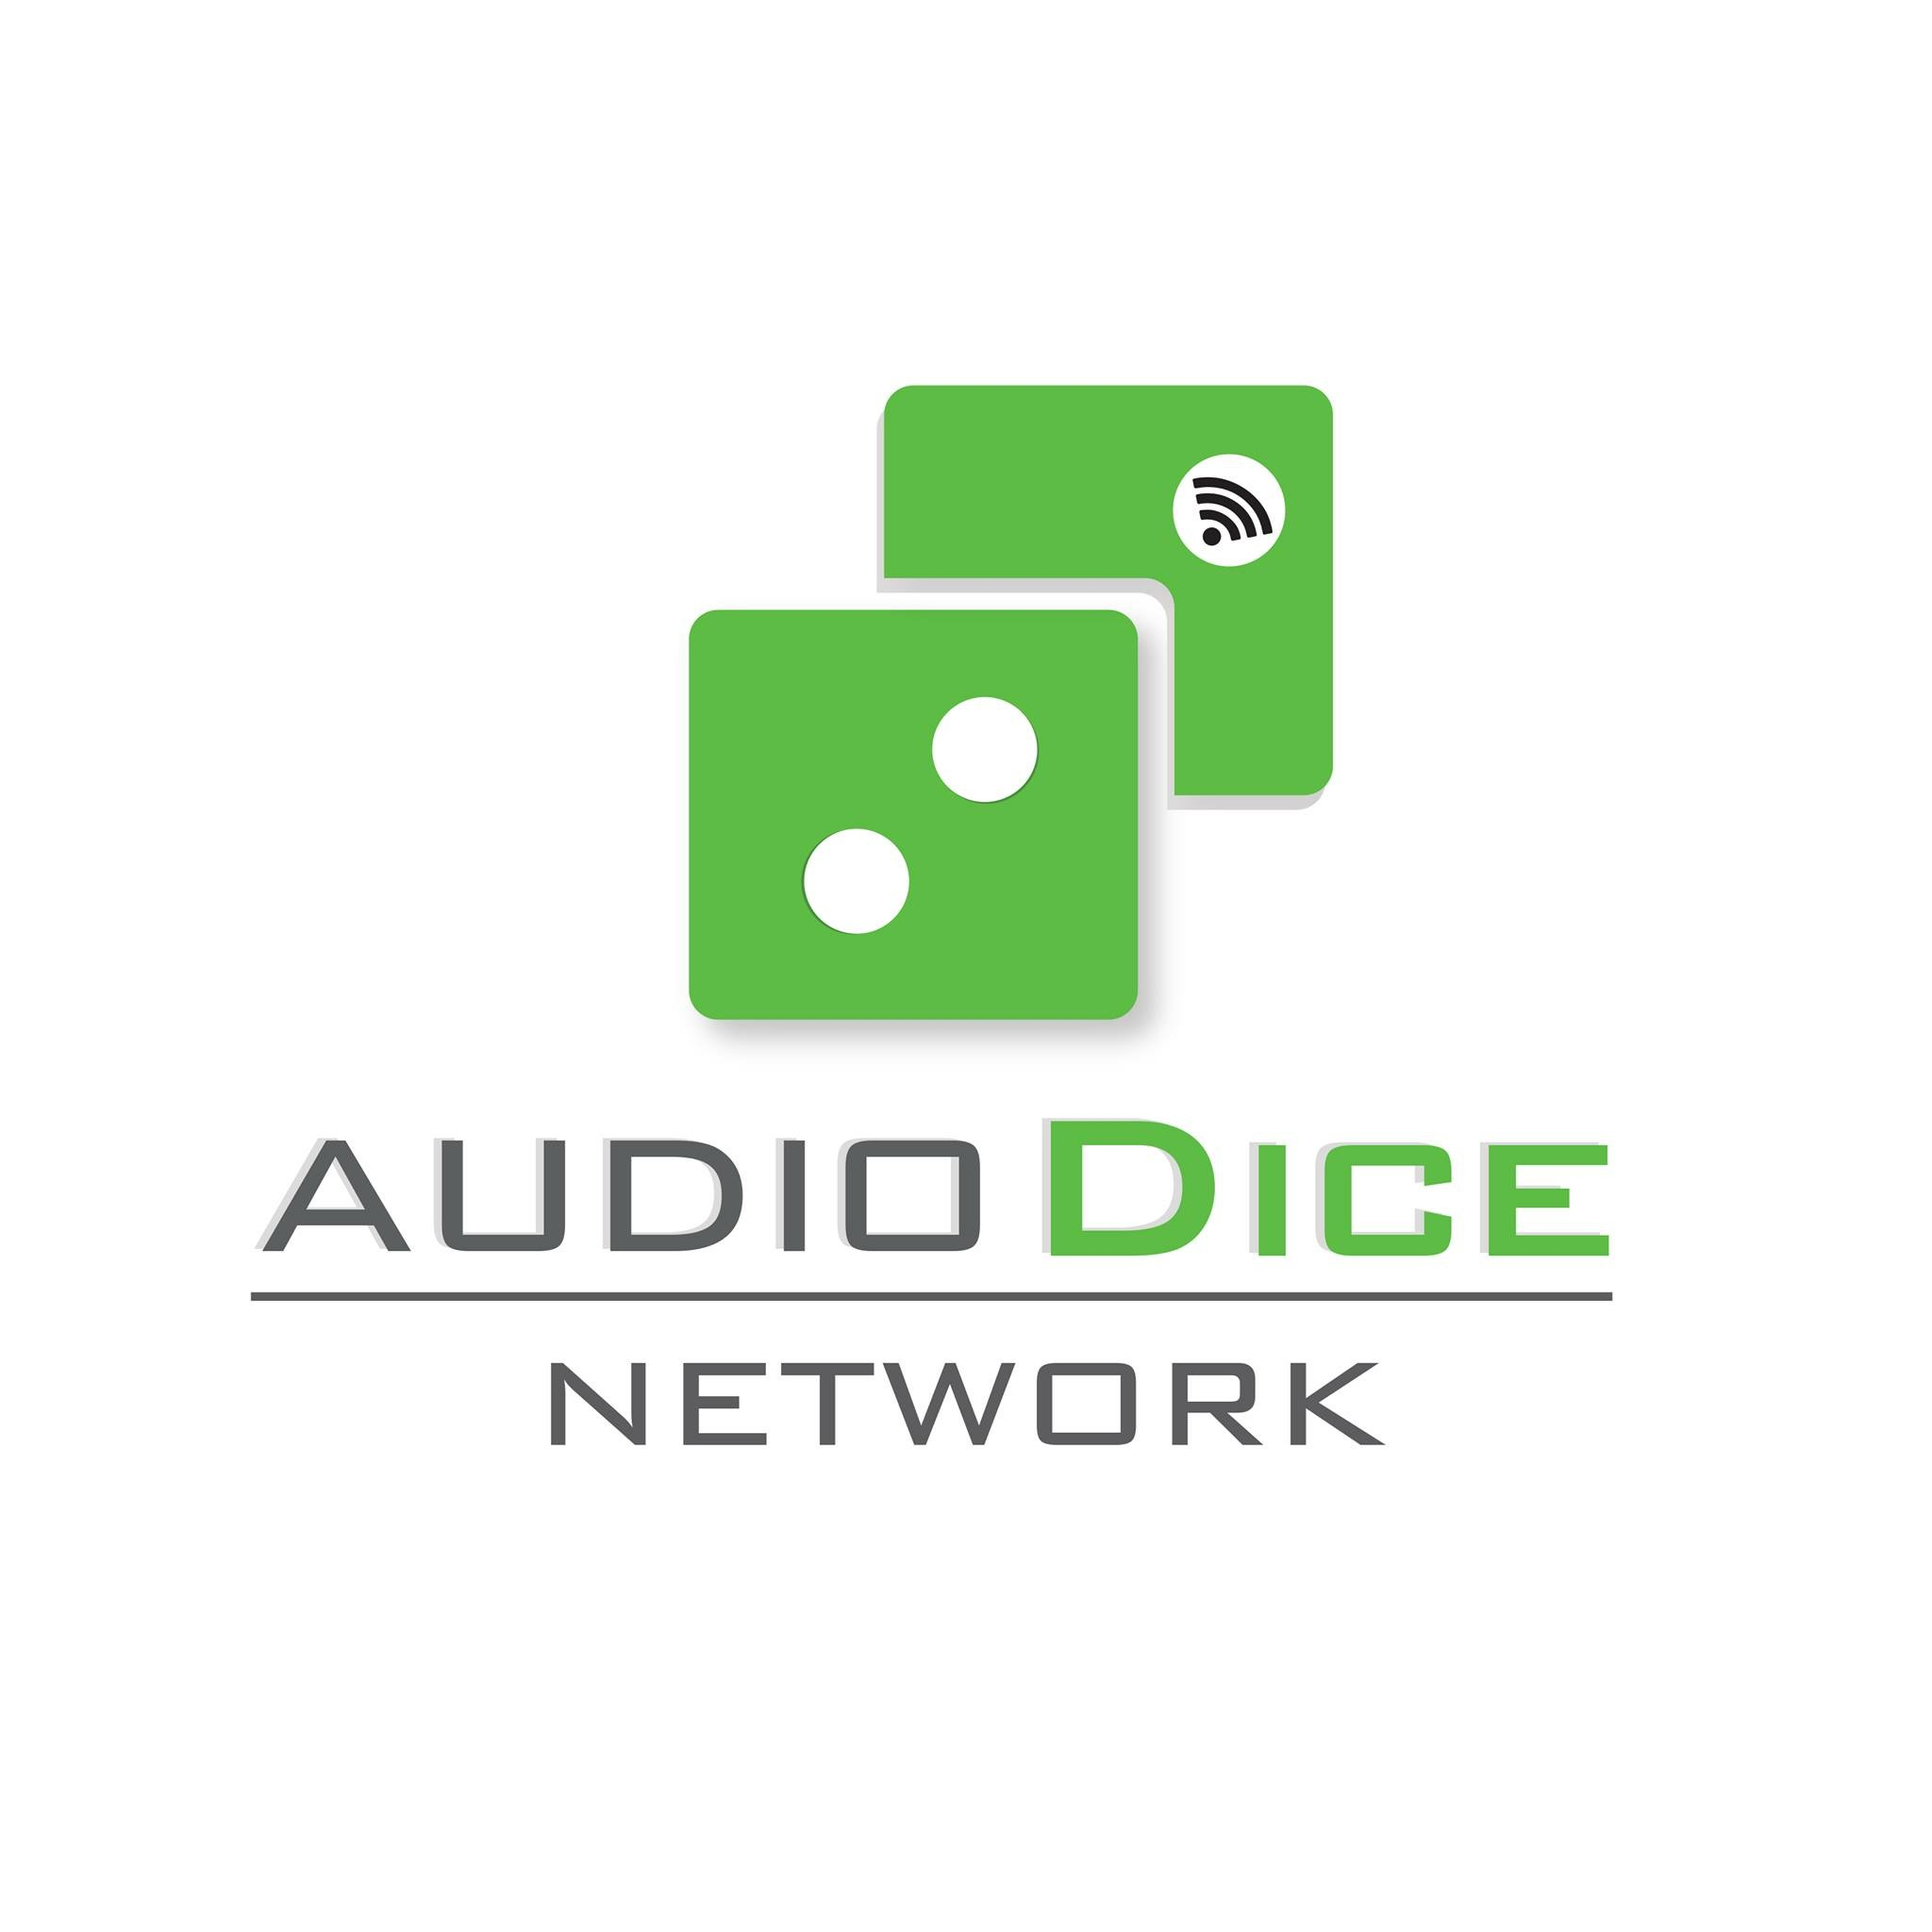 Potencial Millonario an Audio Dice Podcast Network, Digital, Audio, Multi Language, Media, Channel,